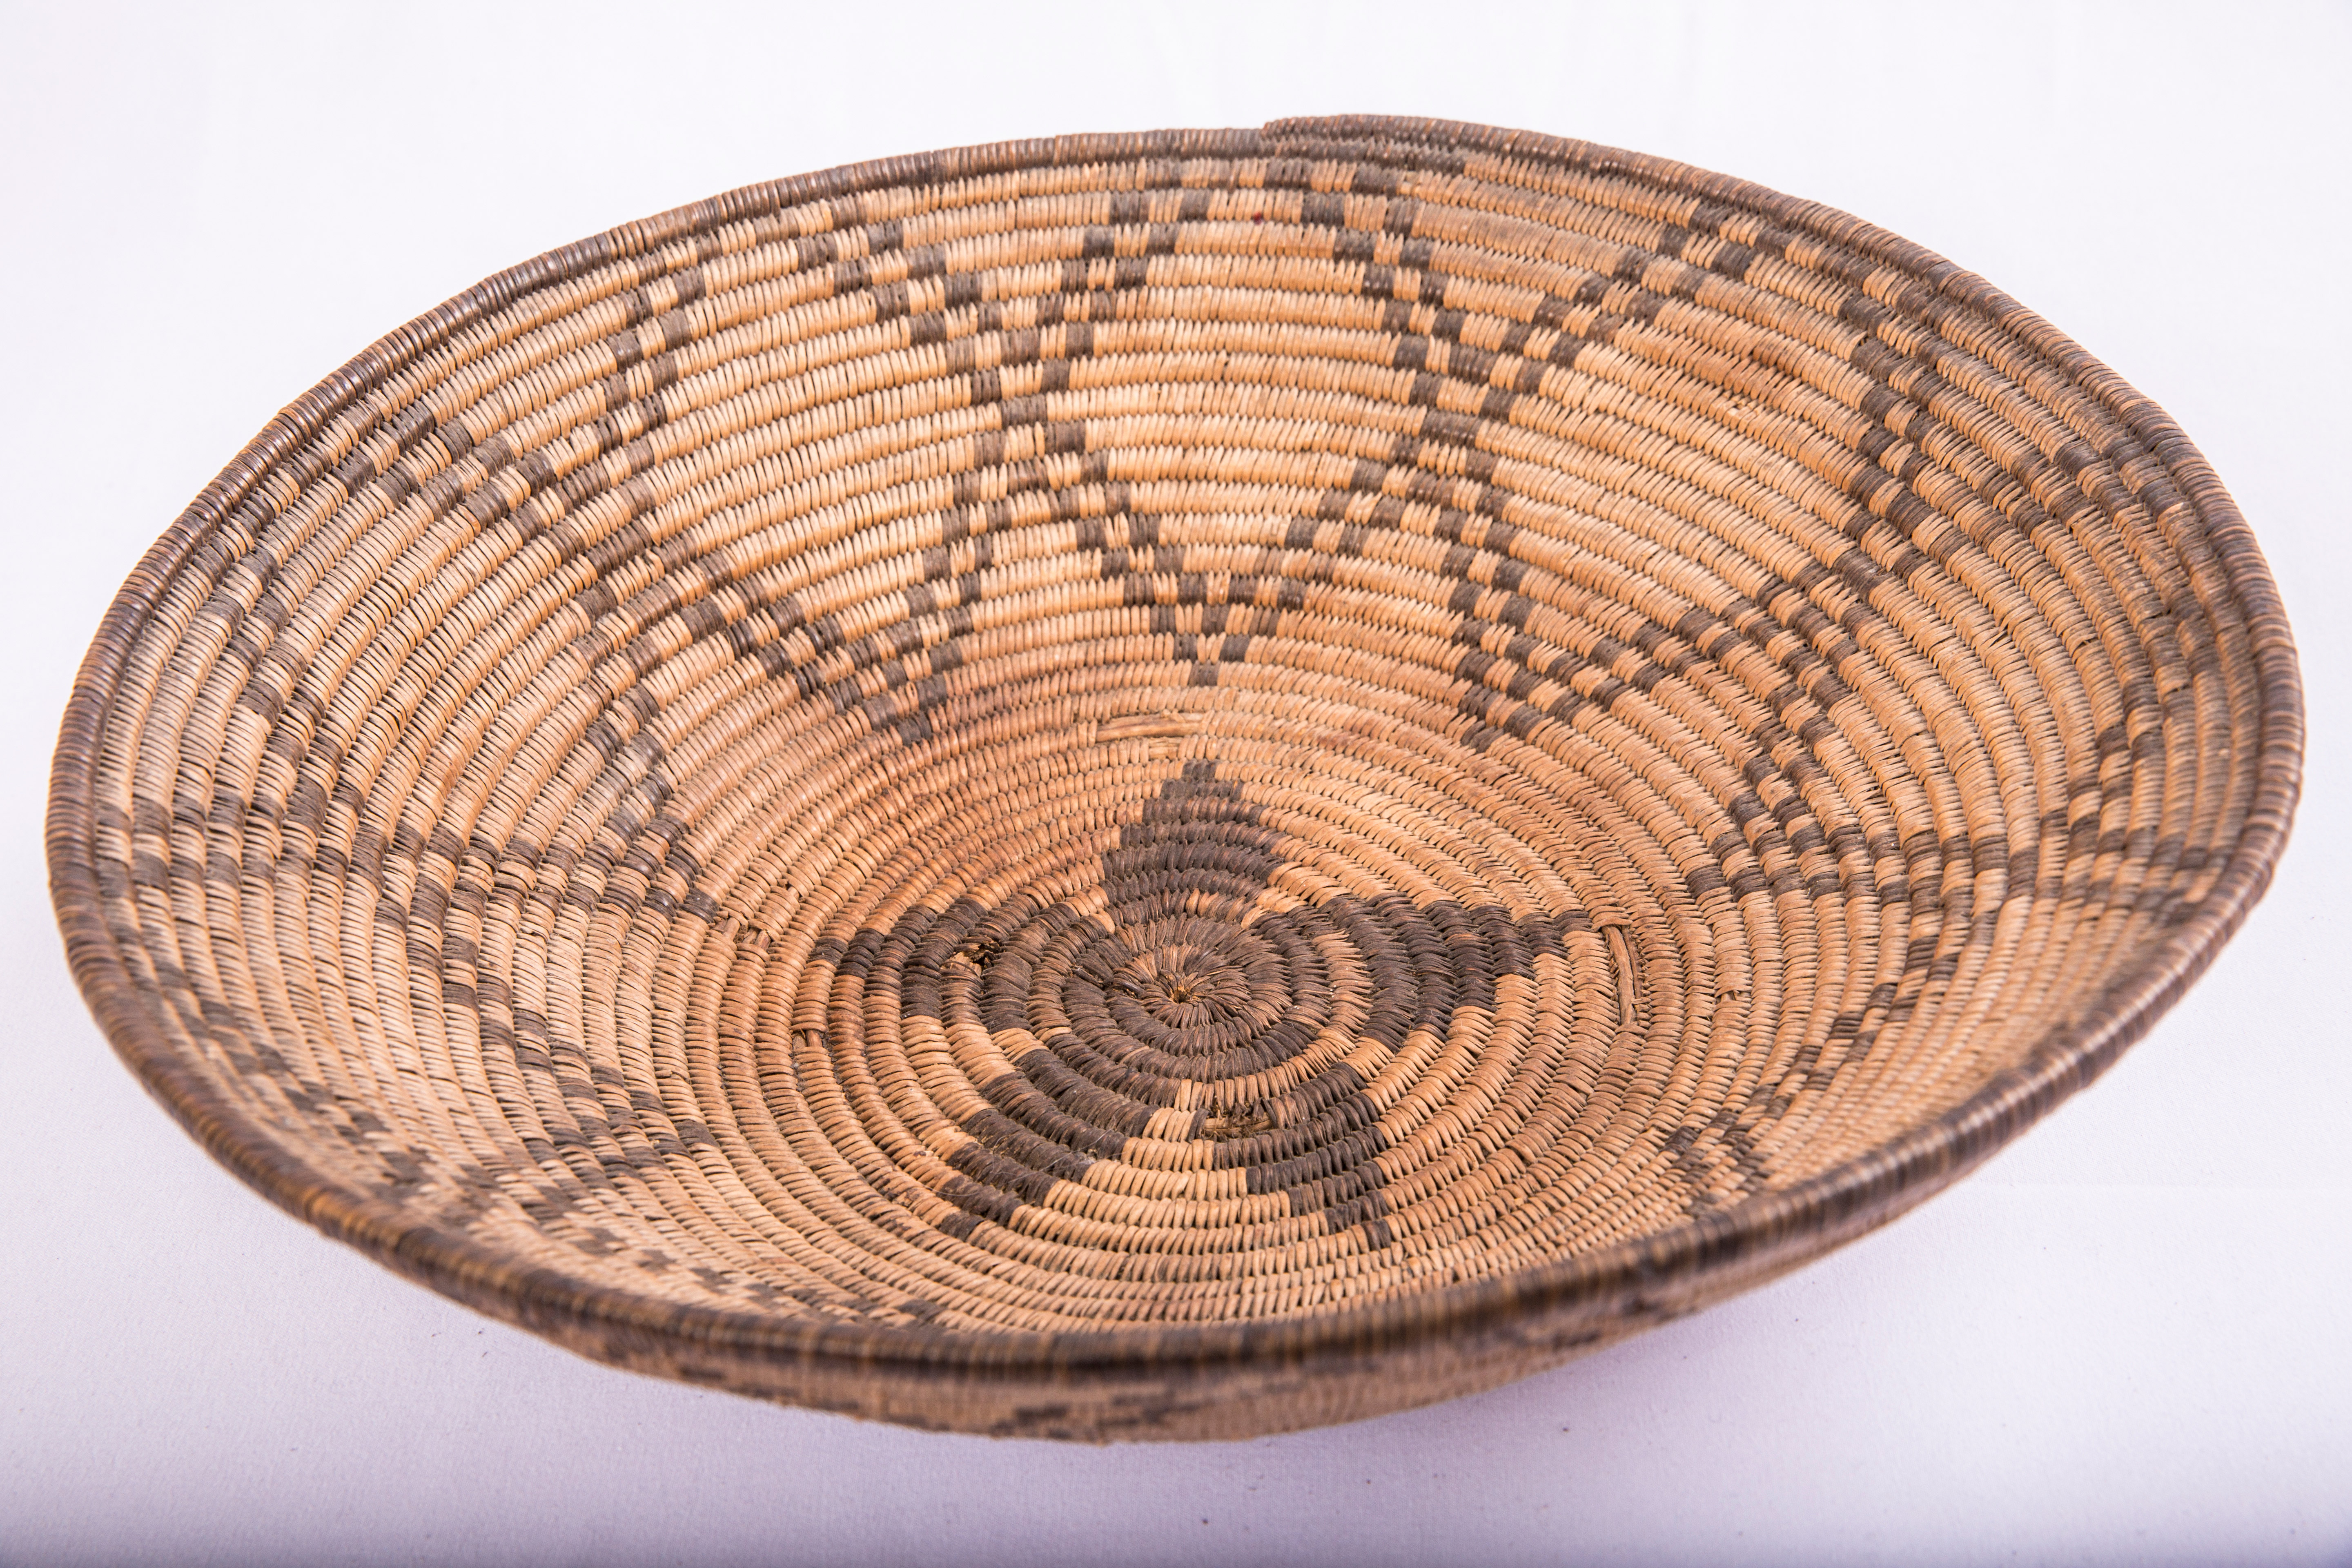 Cooking basket made of willow and black martynia. Star/flower motif with radiating petals and crossing double lattice pattern stitched in black.